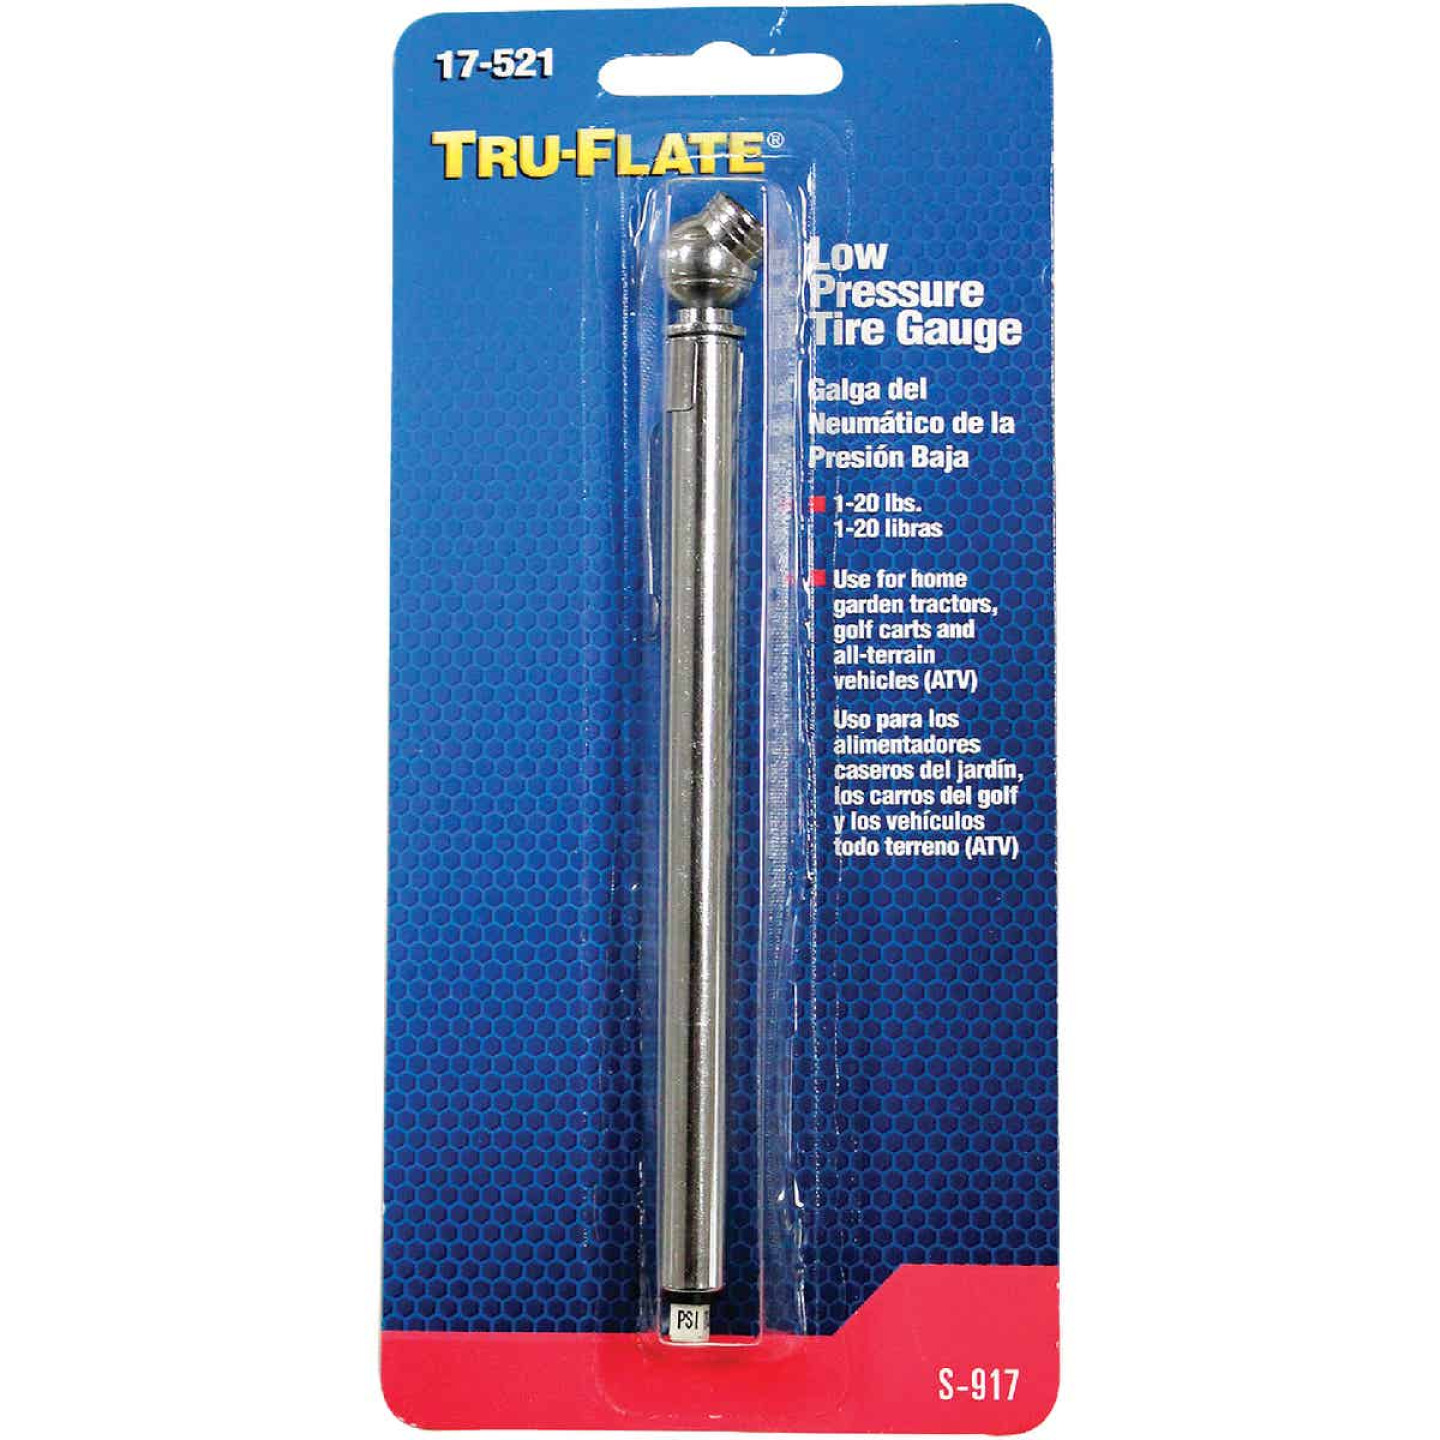 Tru-Flate 1-20 psi Chrome-Plated Tire Gauge Image 2